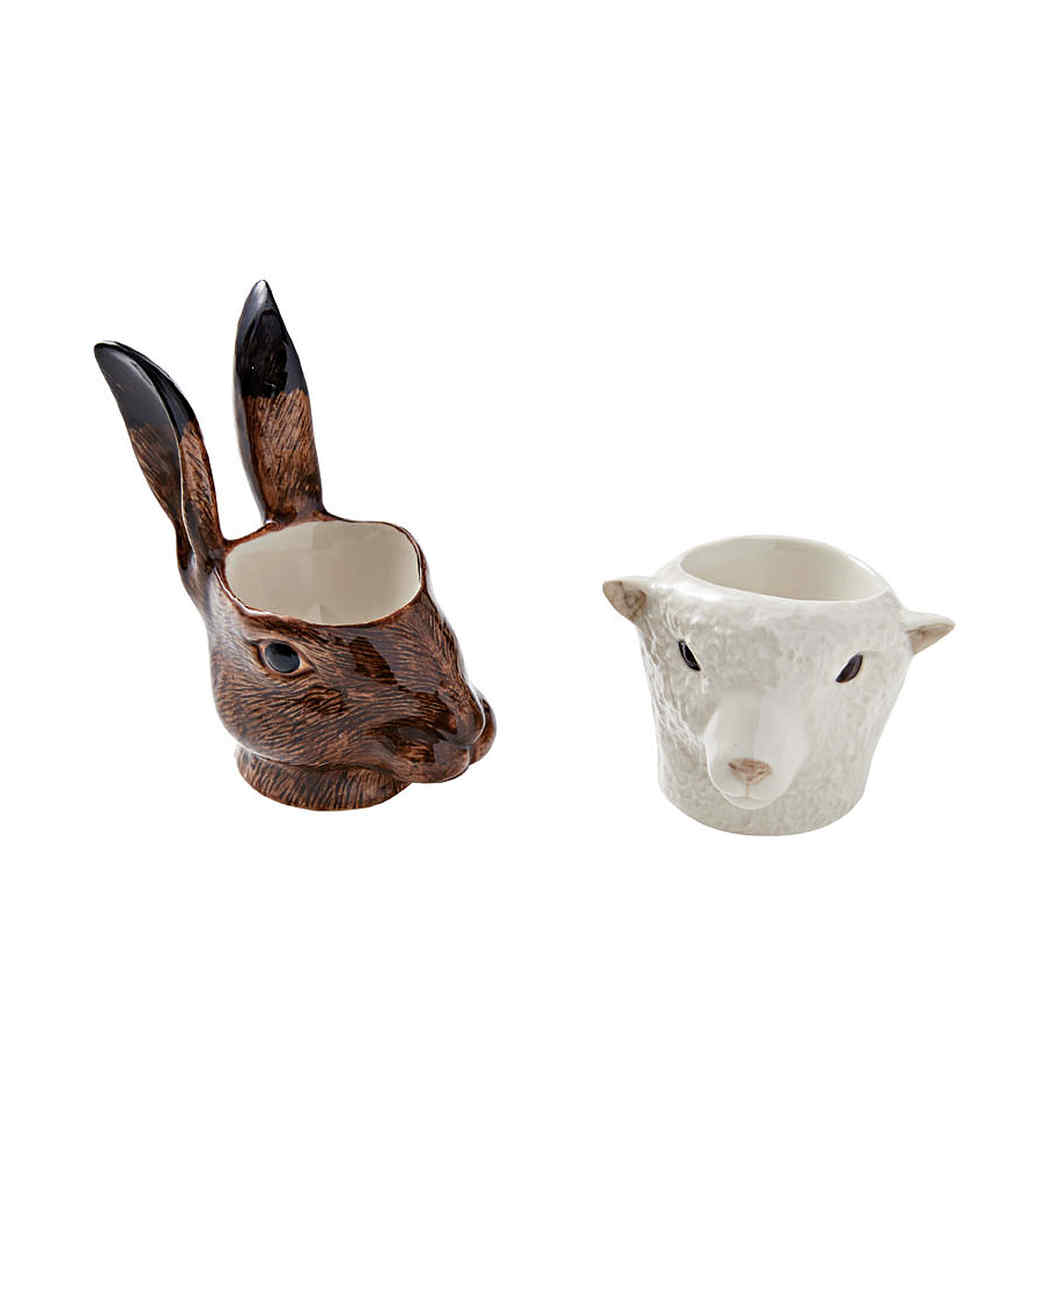 quall-egg-cups-rabbit-087-d112856_l.jpg